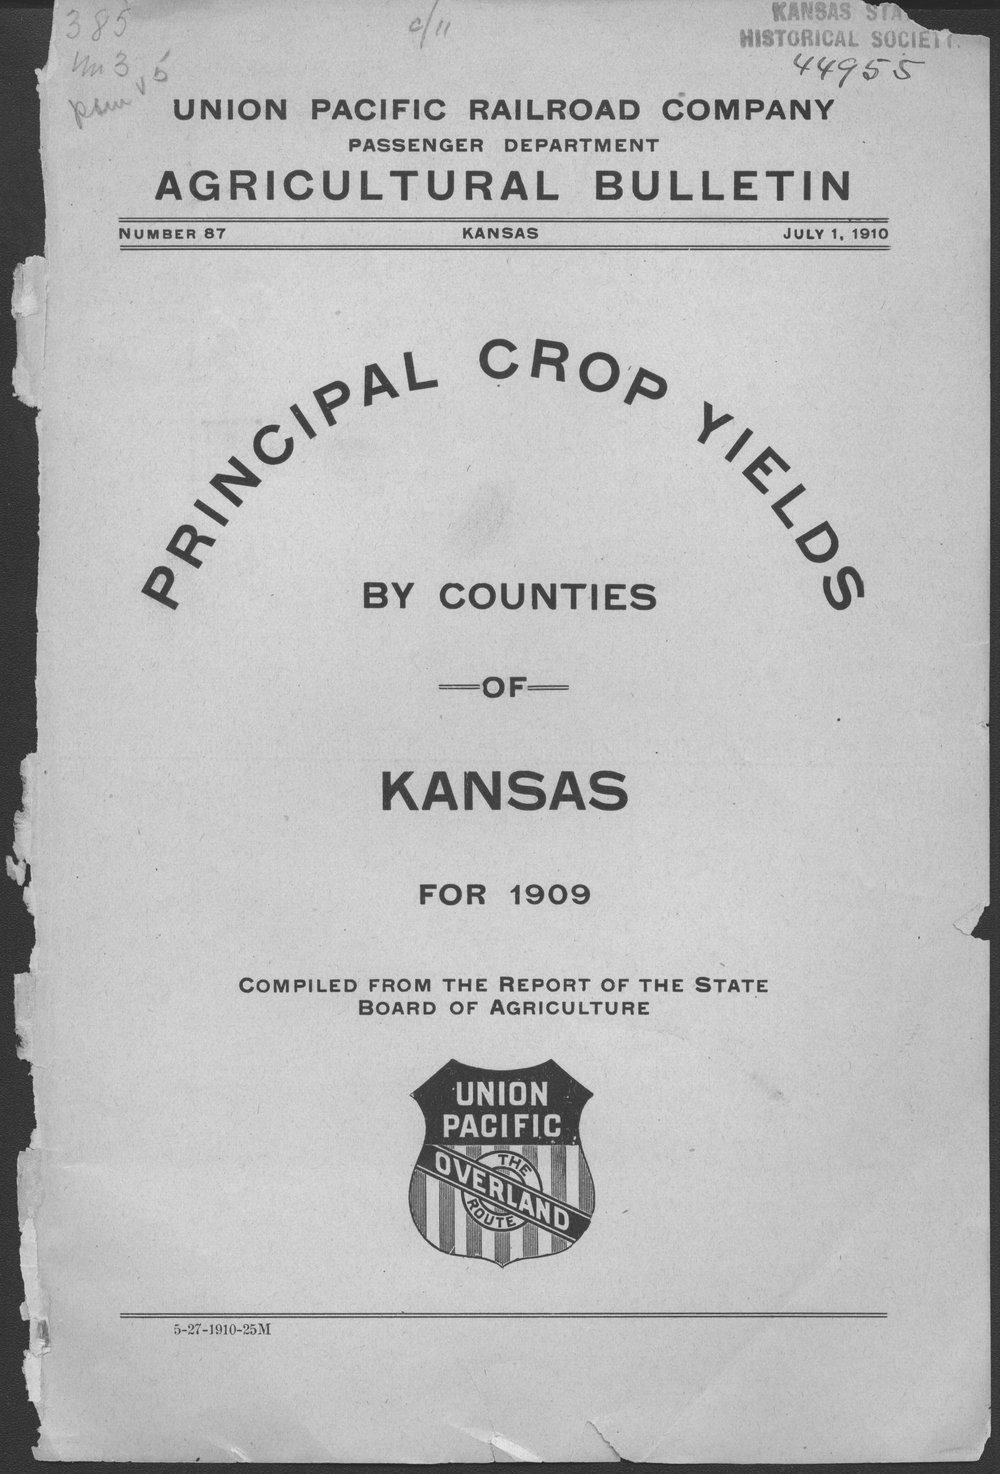 Prinicipal crop yields by counties of Kansas for 1909 - Front Cover